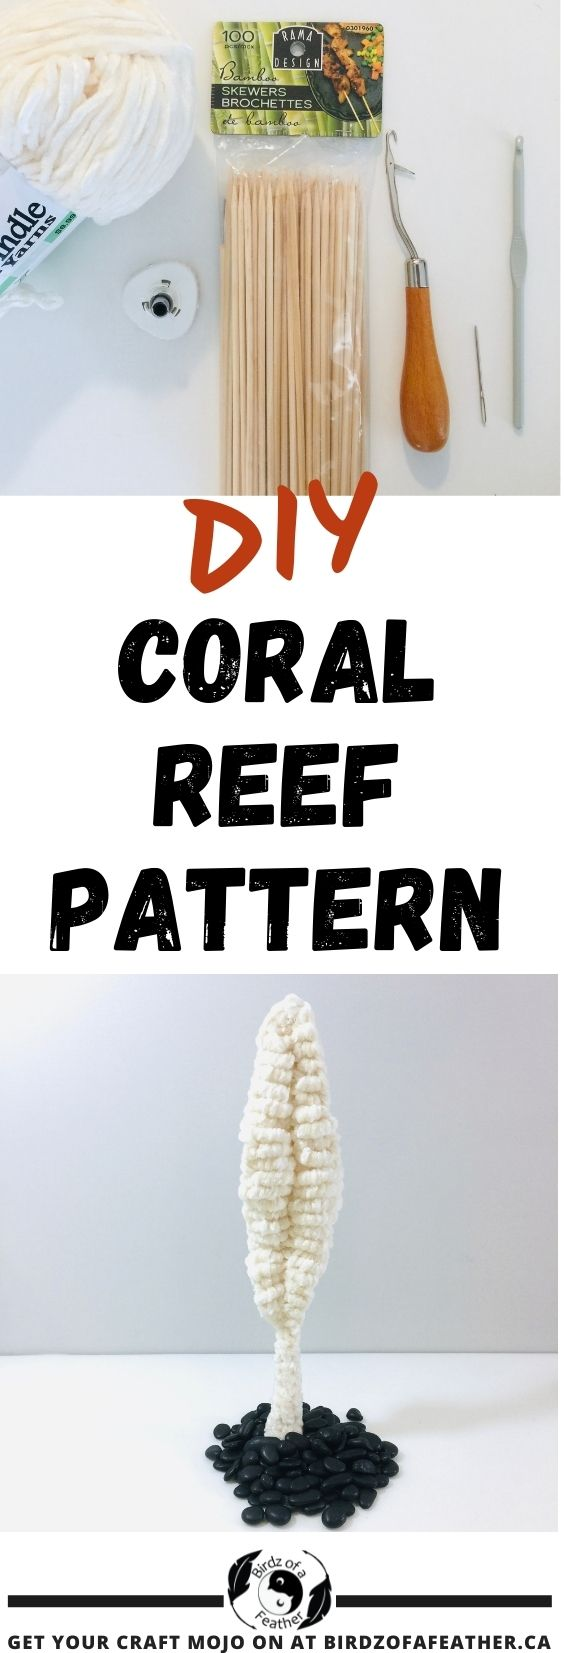 Pinable image for free crochet coral reef pattern showing materials for sea pen and finished crochet coral